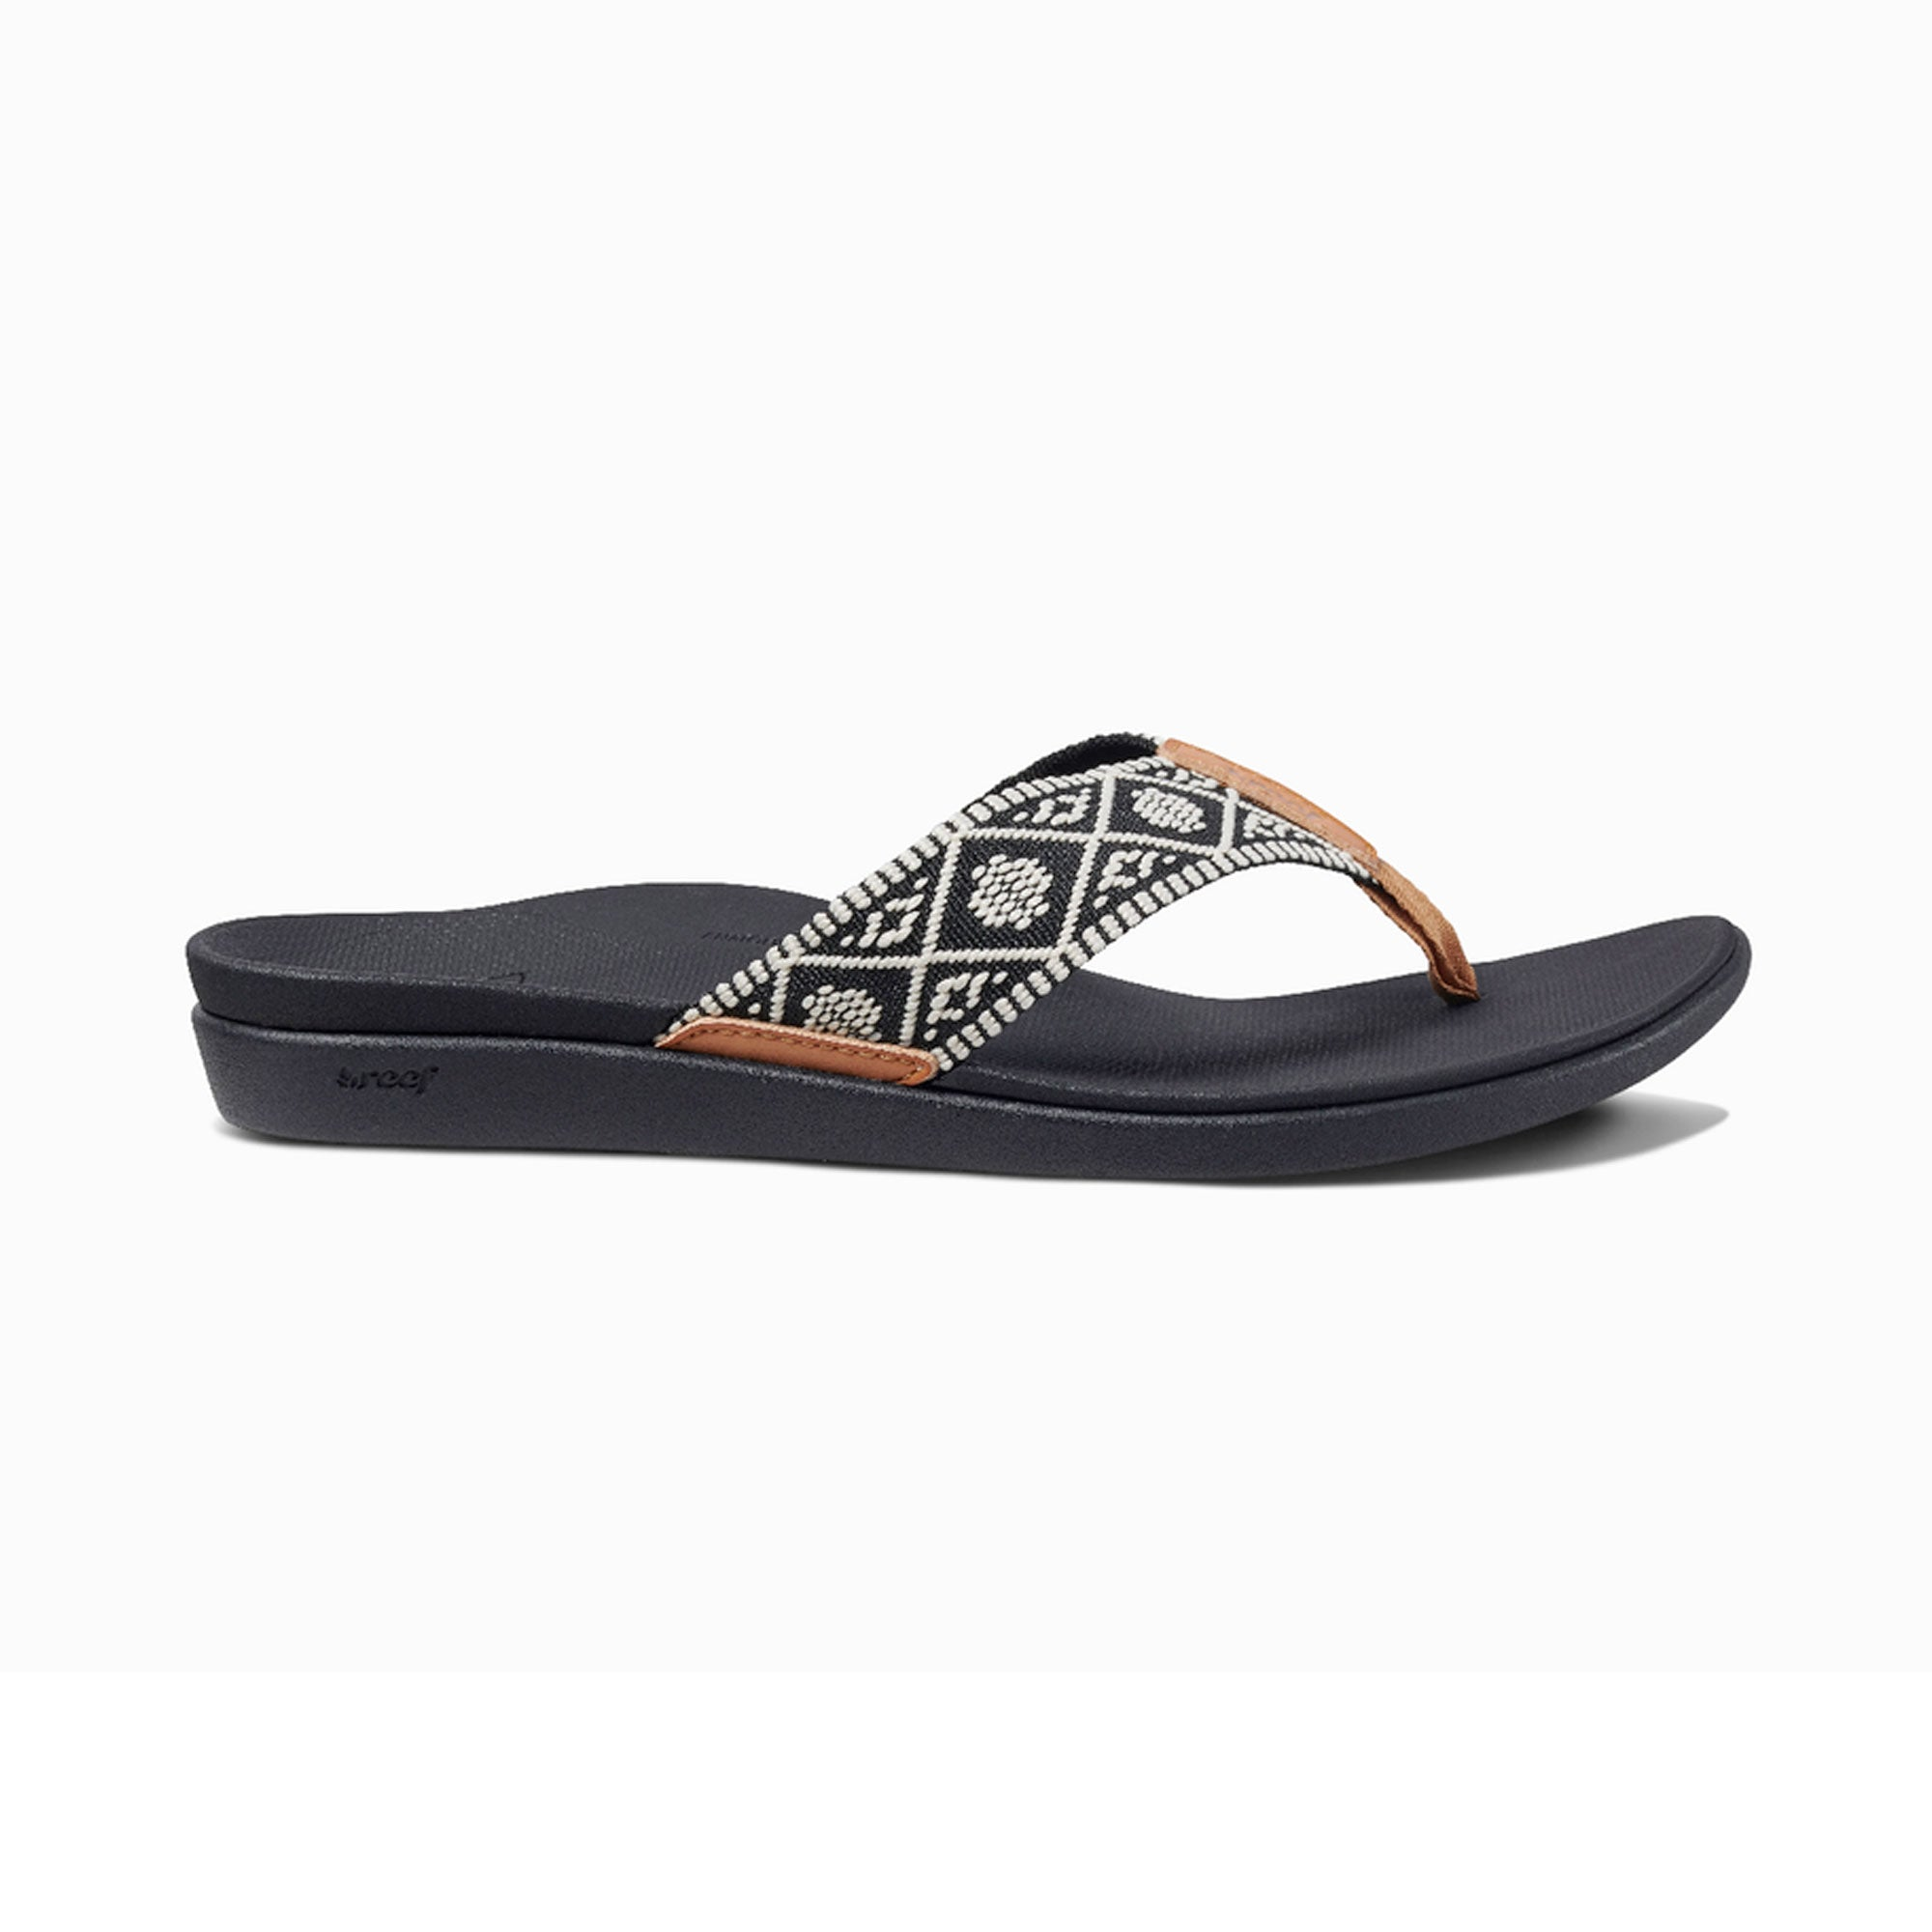 Reef Ortho-Bounce Woven Women's Sandals - Black/White